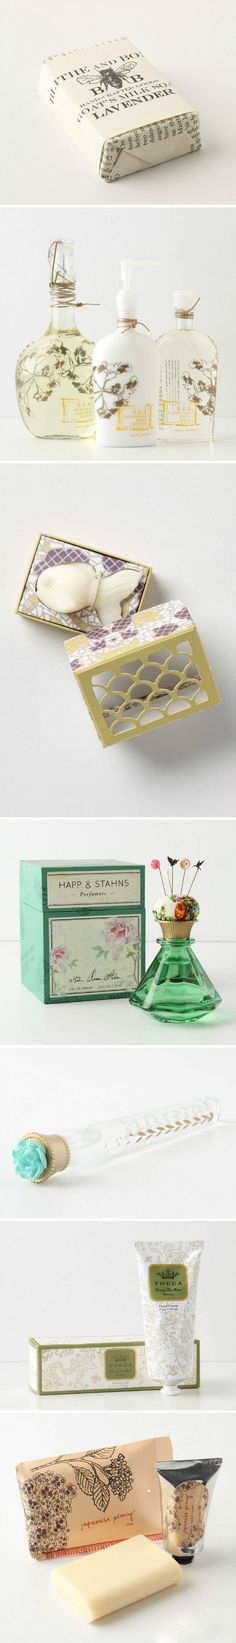 Anthropologie Happ & Stahns Perfumes And Colognes